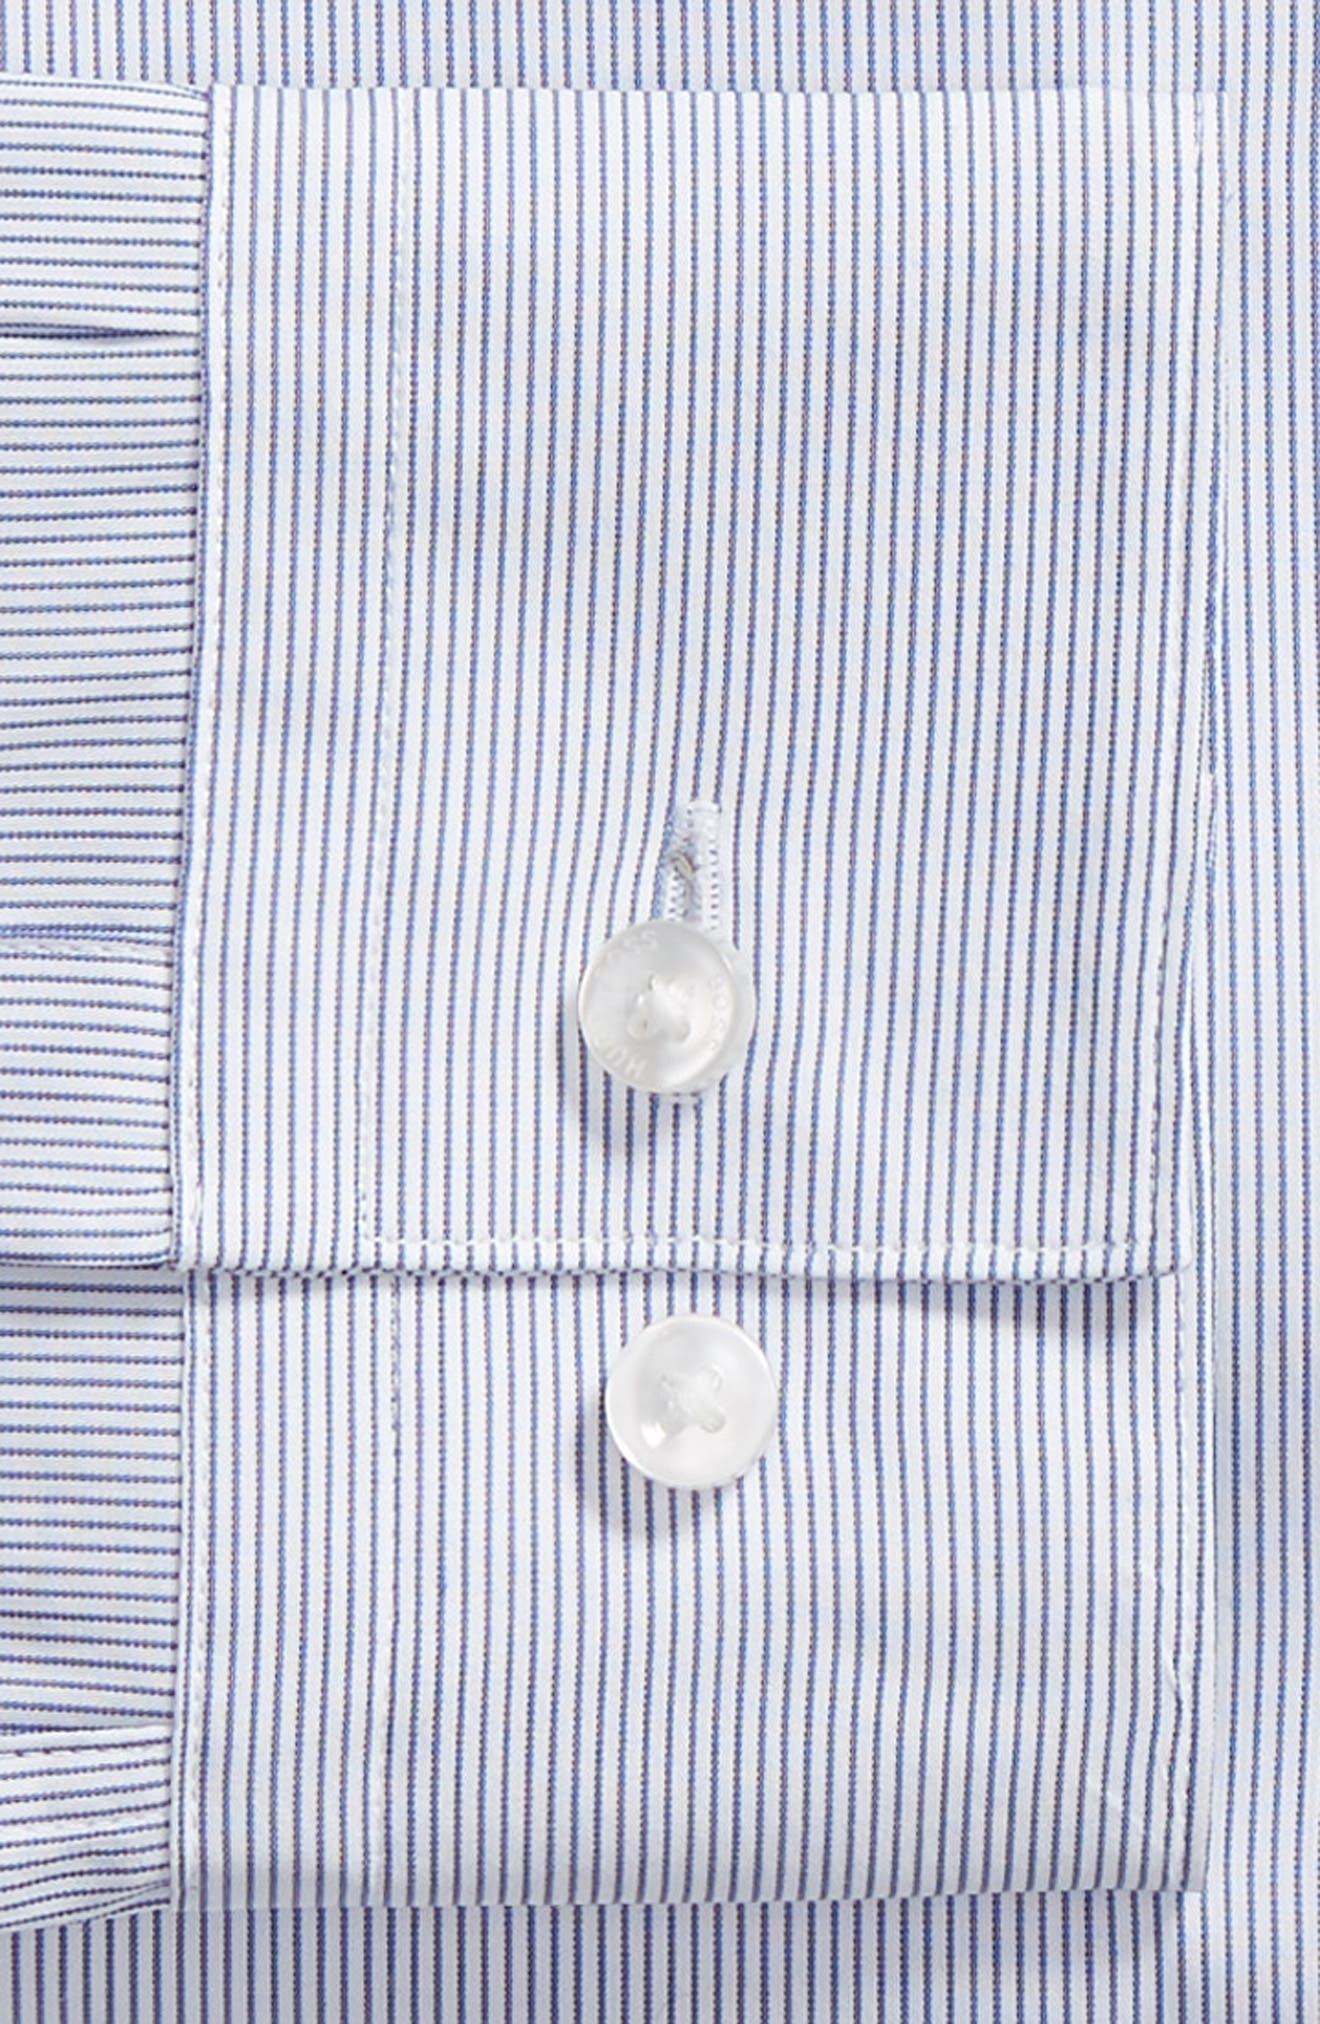 Isko Slim Fit Stretch Stripe Dress Shirt,                             Alternate thumbnail 6, color,                             BLUE